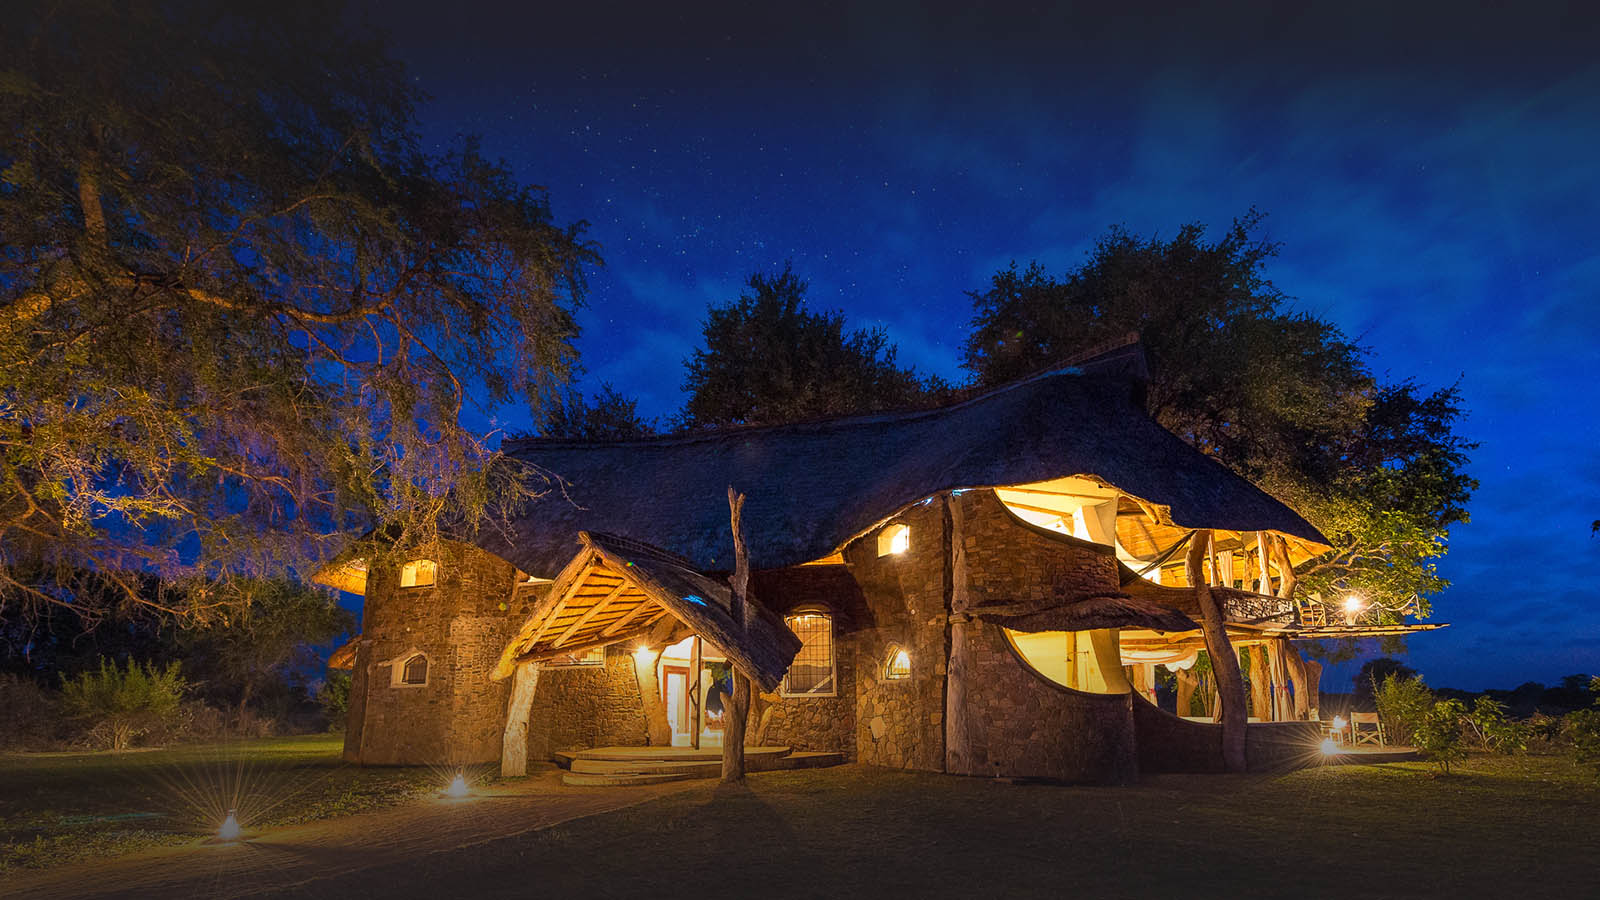 luangwa safari house lodge-zambia-in-style-tours-safari-packages-lodges-travel-south-luangwa-national-park-night-lights